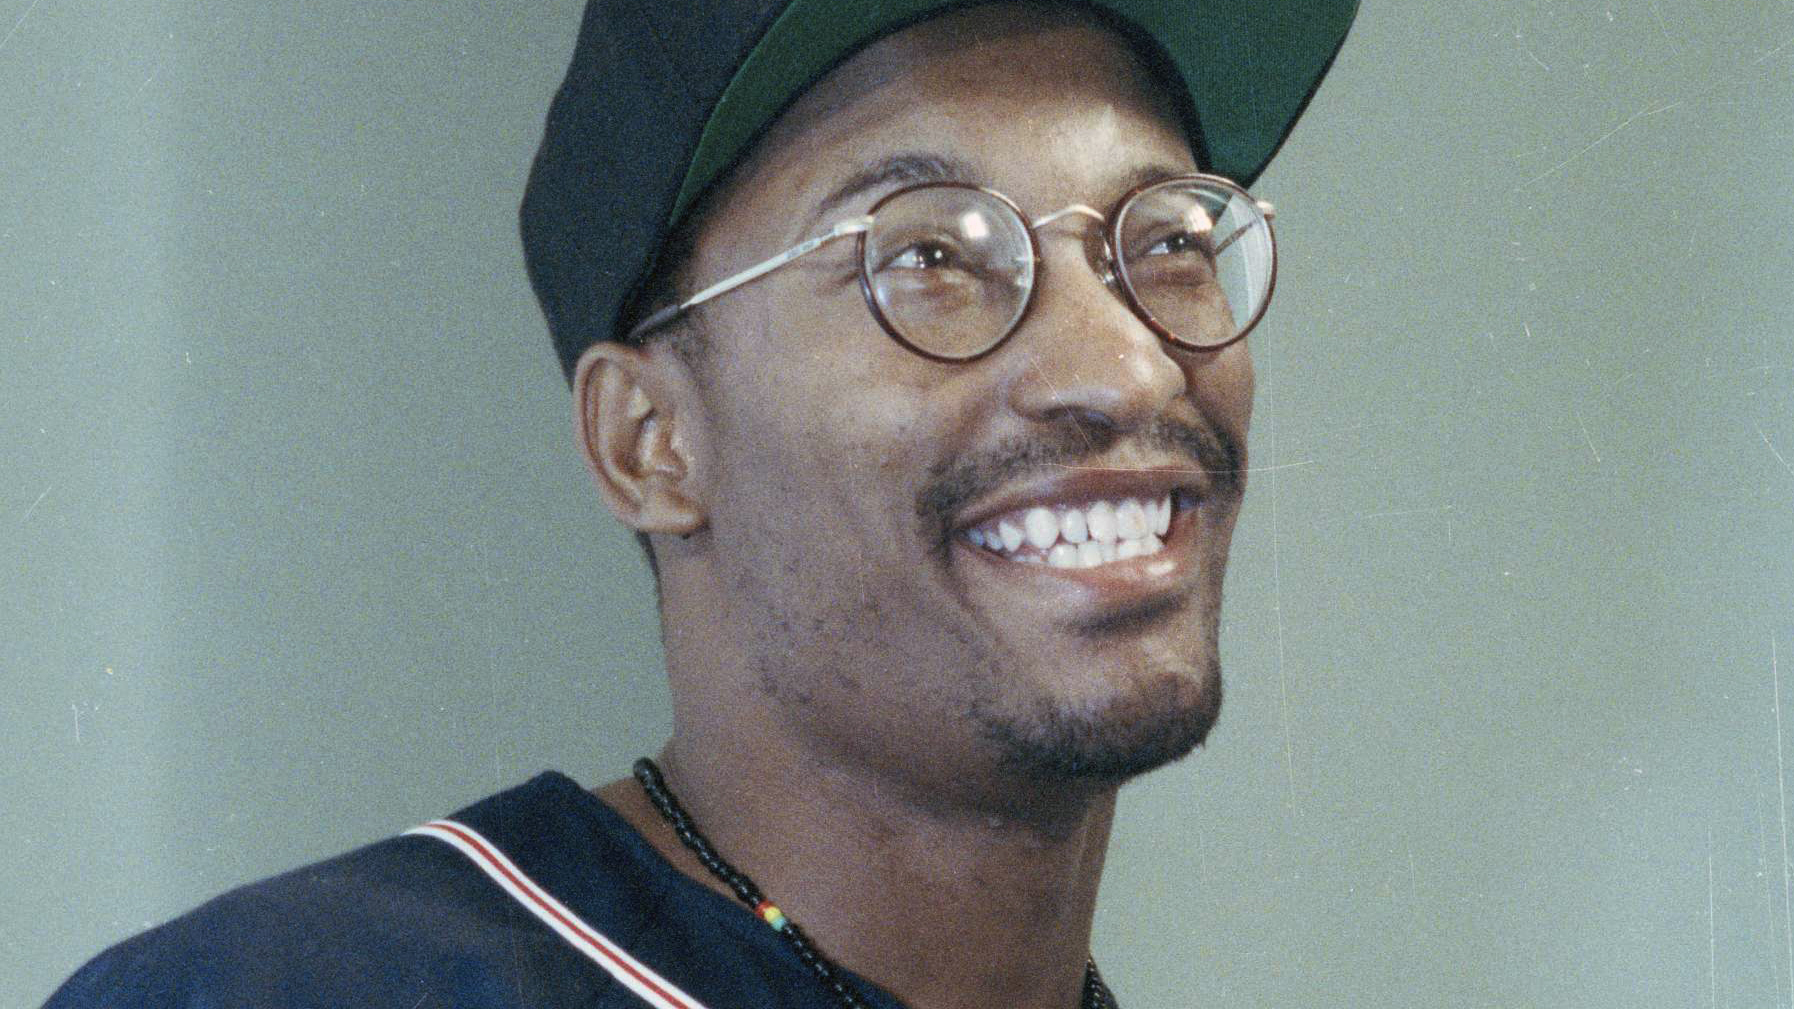 John Singleton, seen in Los Angeles in July 1991, not long after the release of Boyz n the Hood. The movie earned the young filmmaker two Oscar nominations.